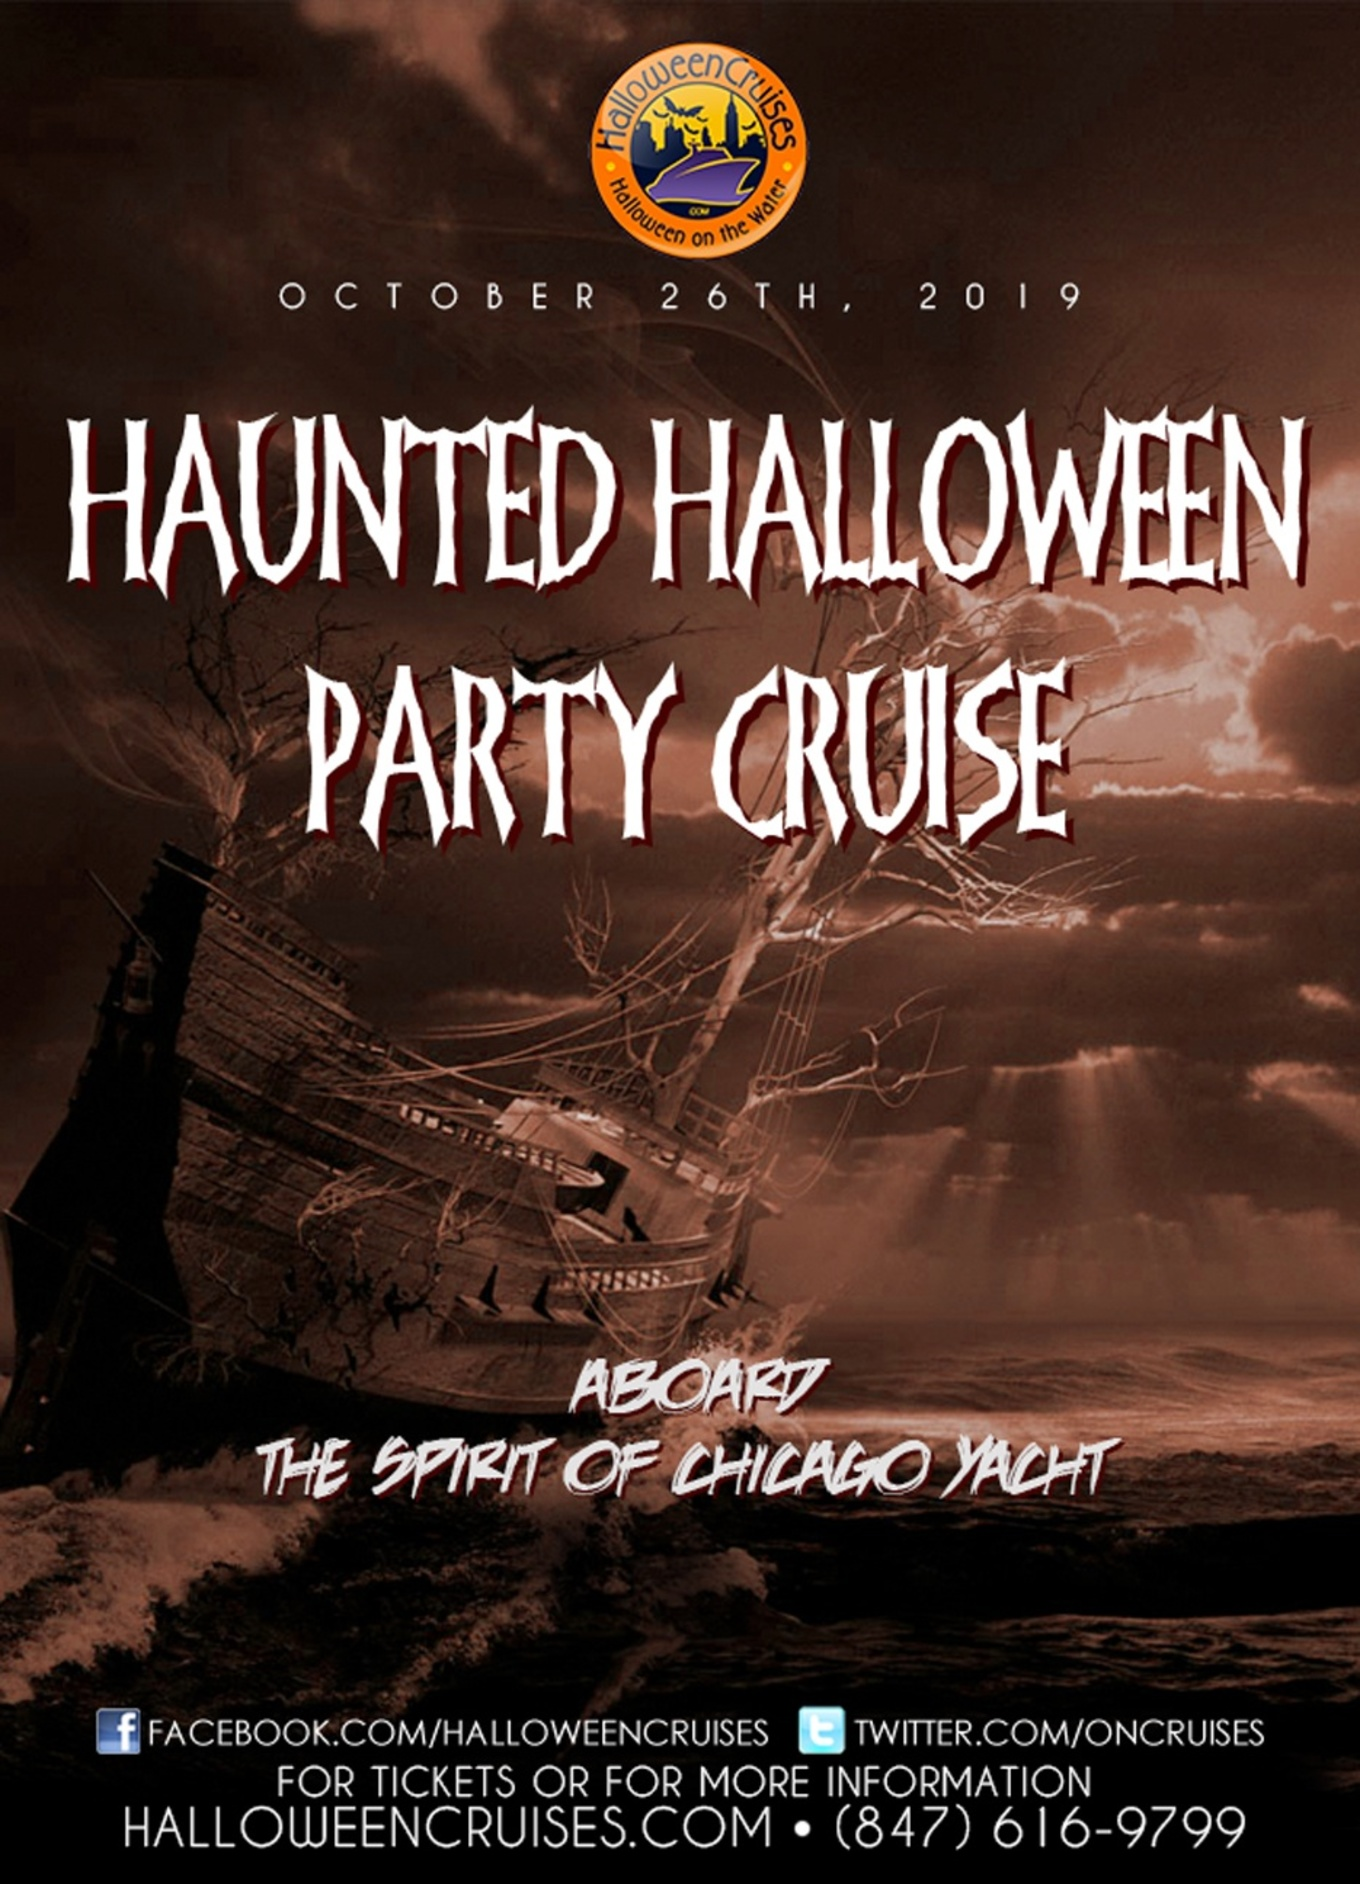 The Haunted Halloween Party Cruise aboard the Spirit of